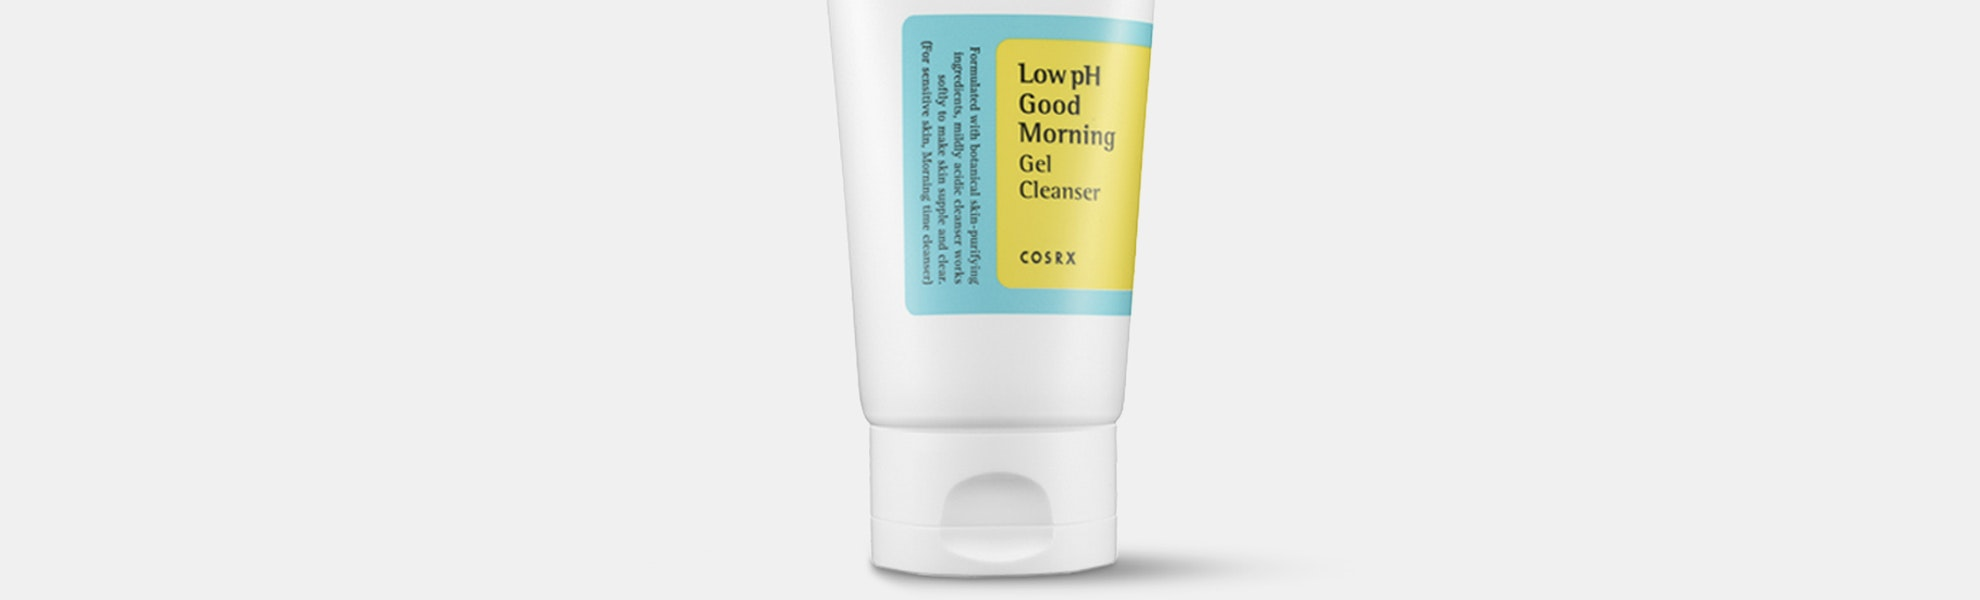 COSRX Low pH Good Morning Gel Cleanser (2-Pack)